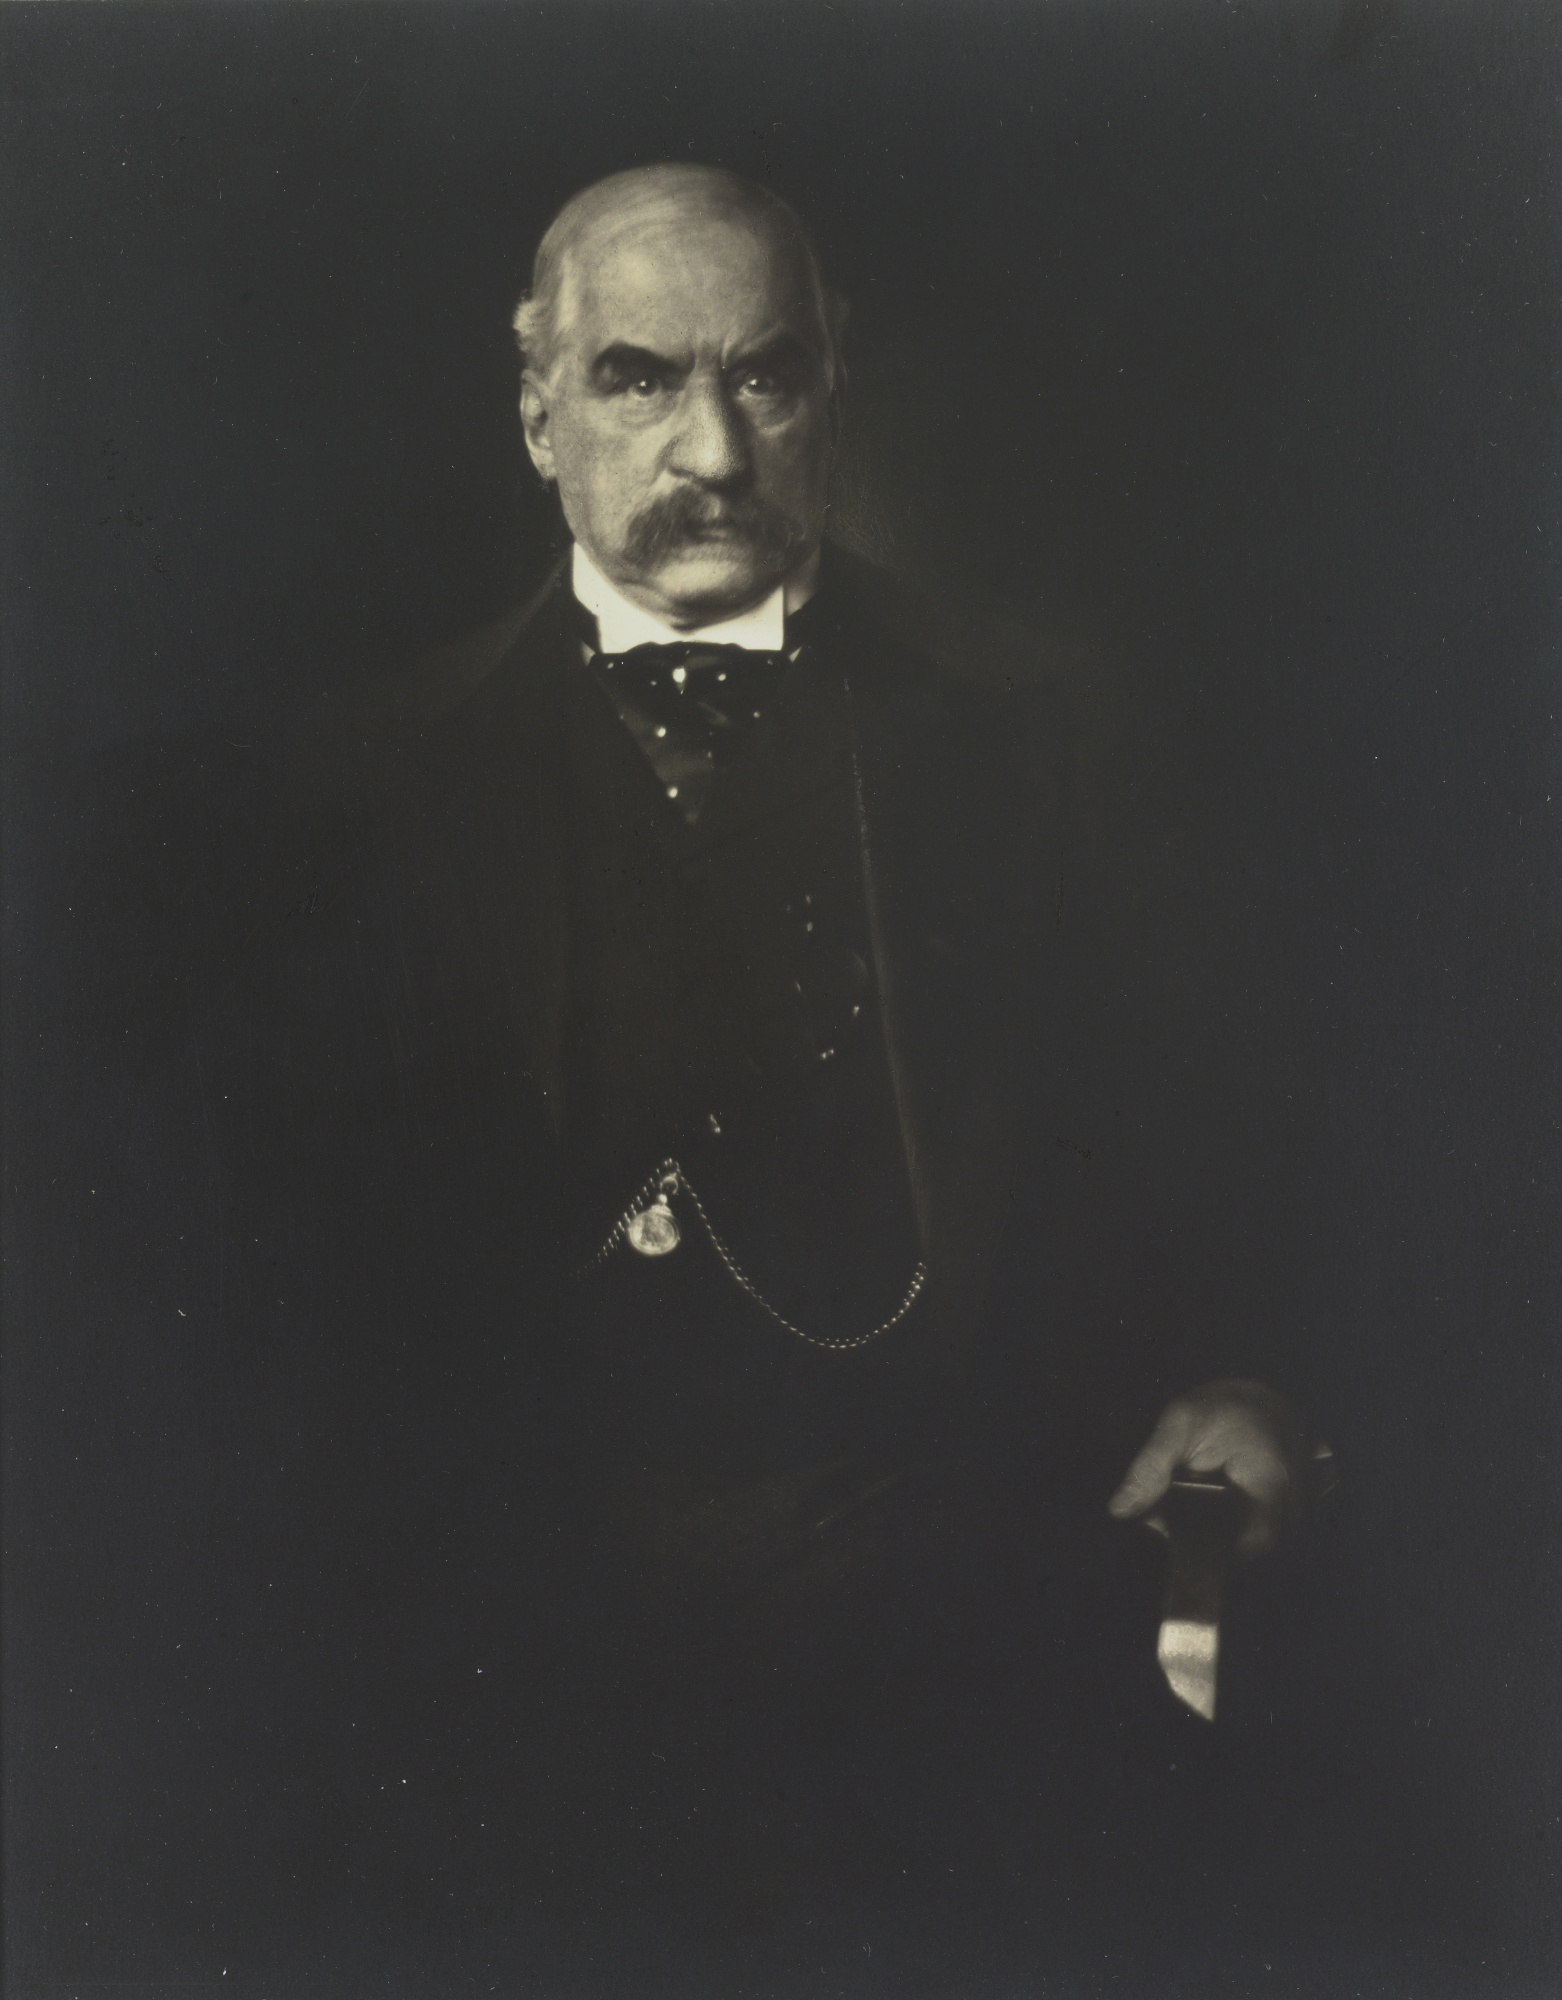 J.P. Morgan in 1903